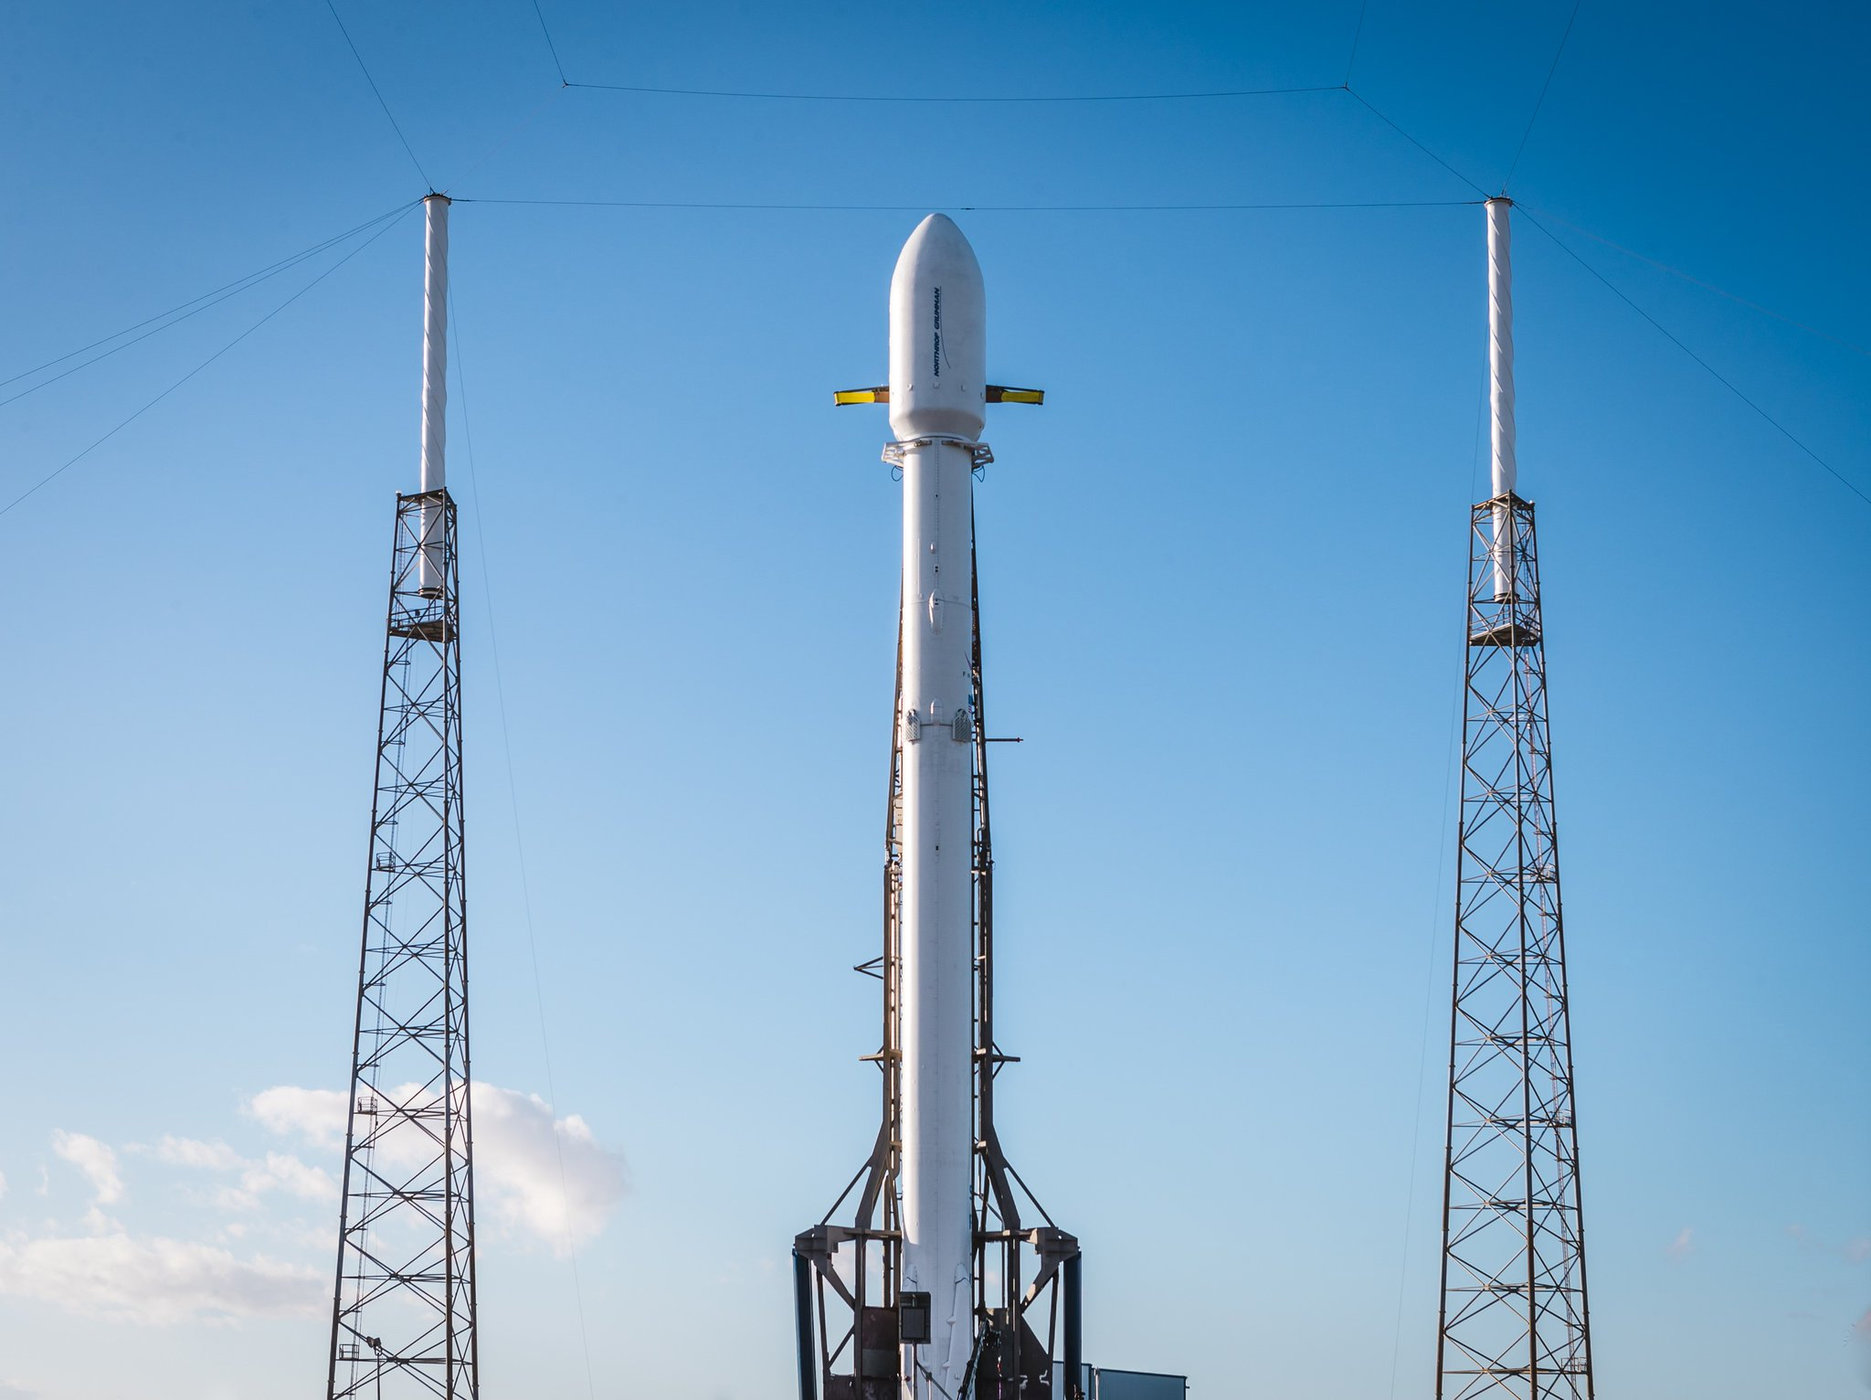 SpaceX to launch secret Zuma mission